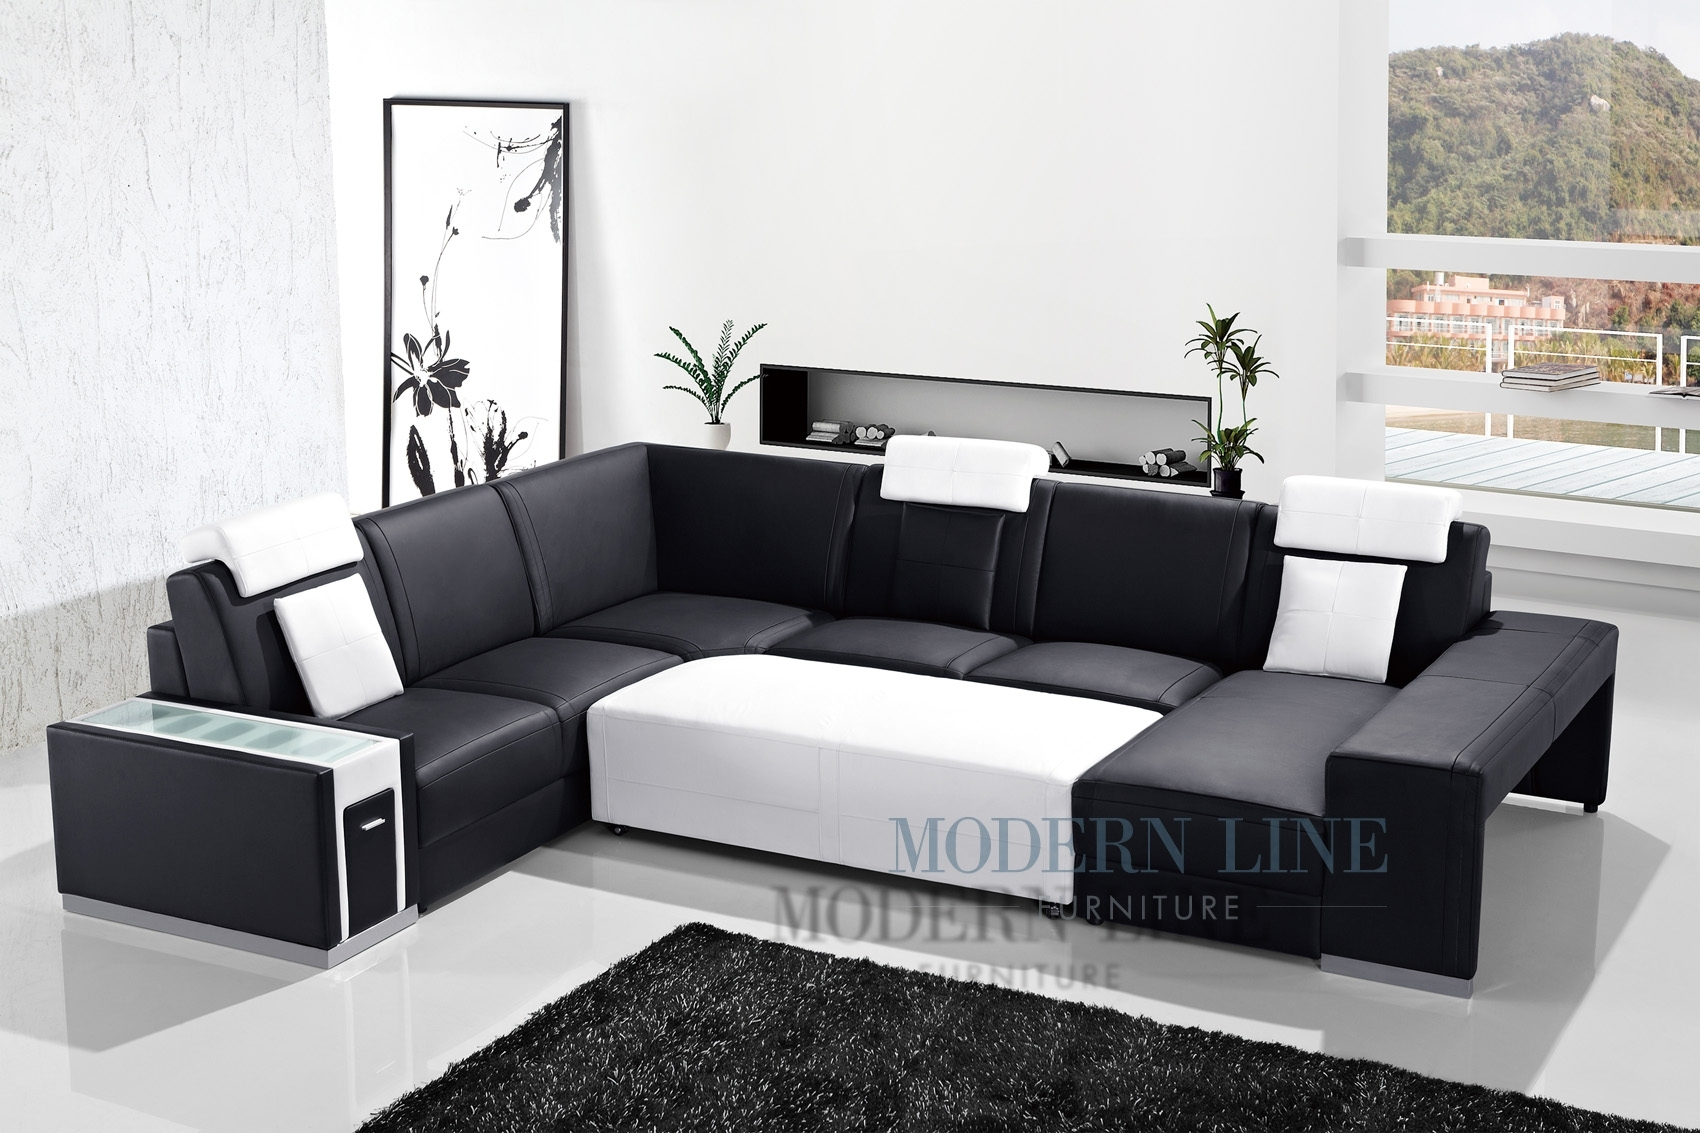 Awesome Black Leather Sectional With Ottoman Ideas – Liltigertoo Regarding Black Leather Sectionals With Ottoman (Image 2 of 10)